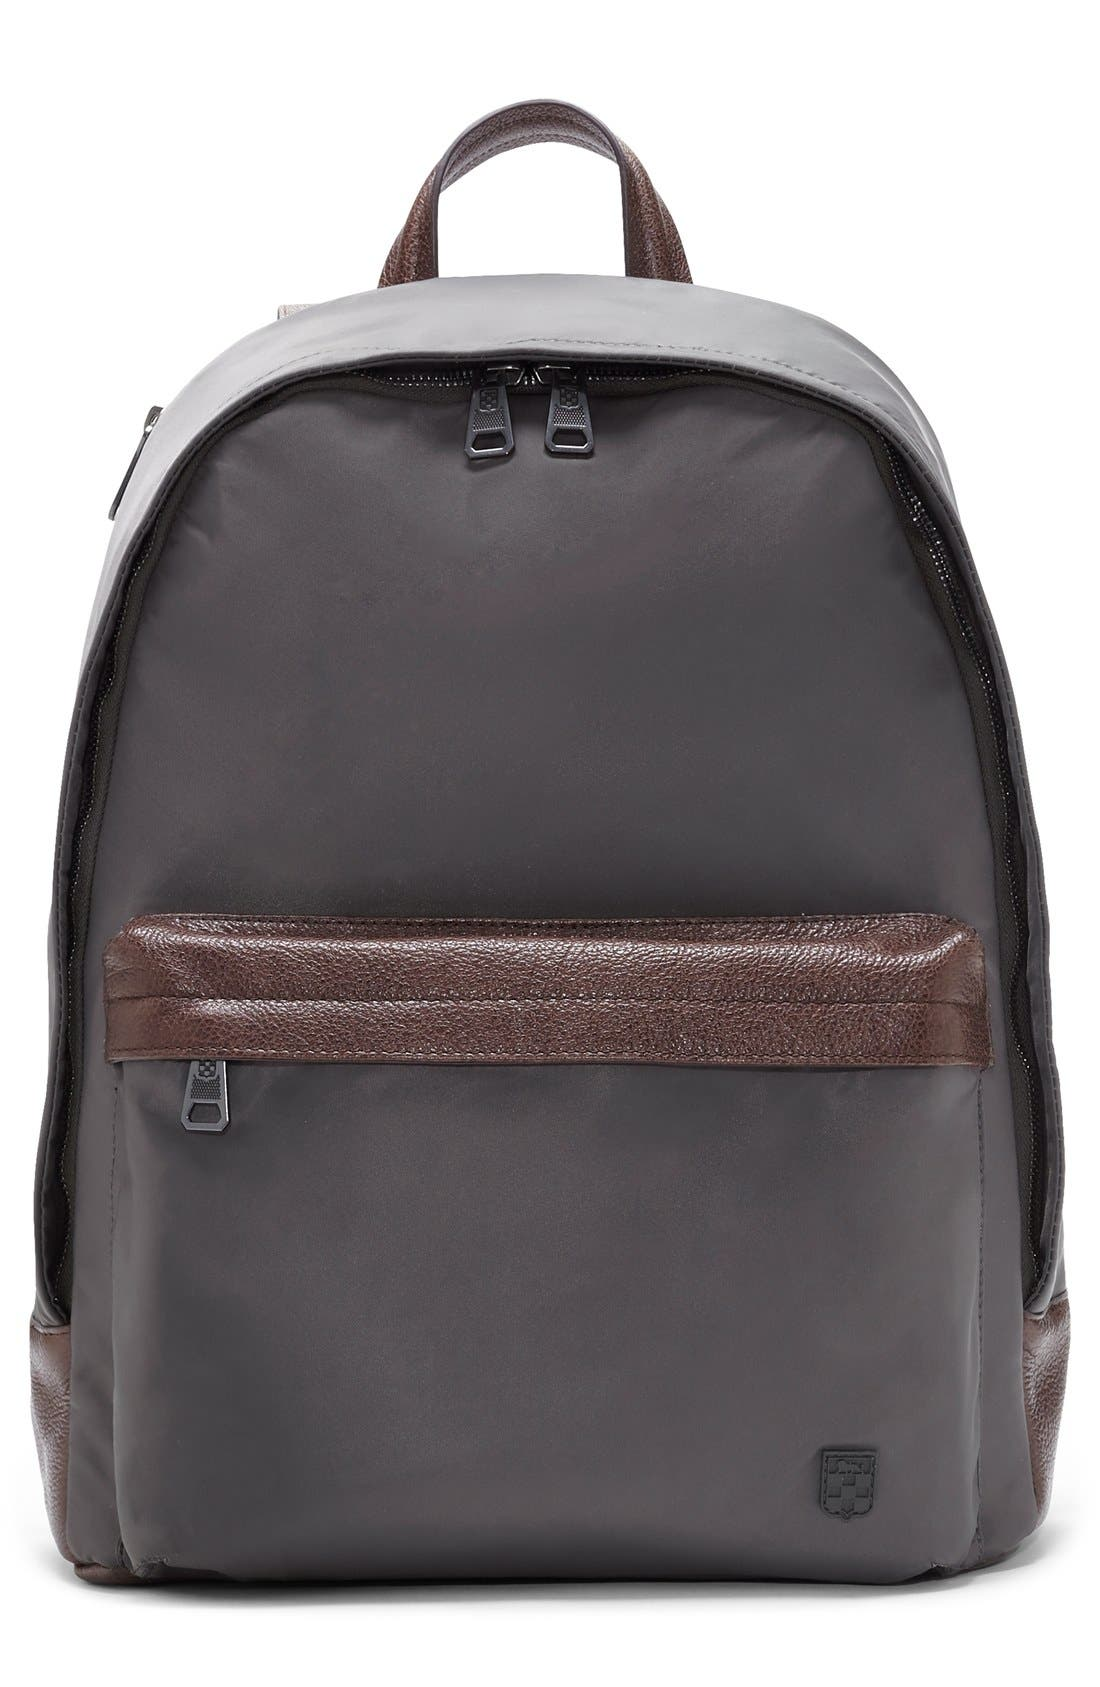 'Tolve' Nylon Backpack,                             Main thumbnail 1, color,                             021